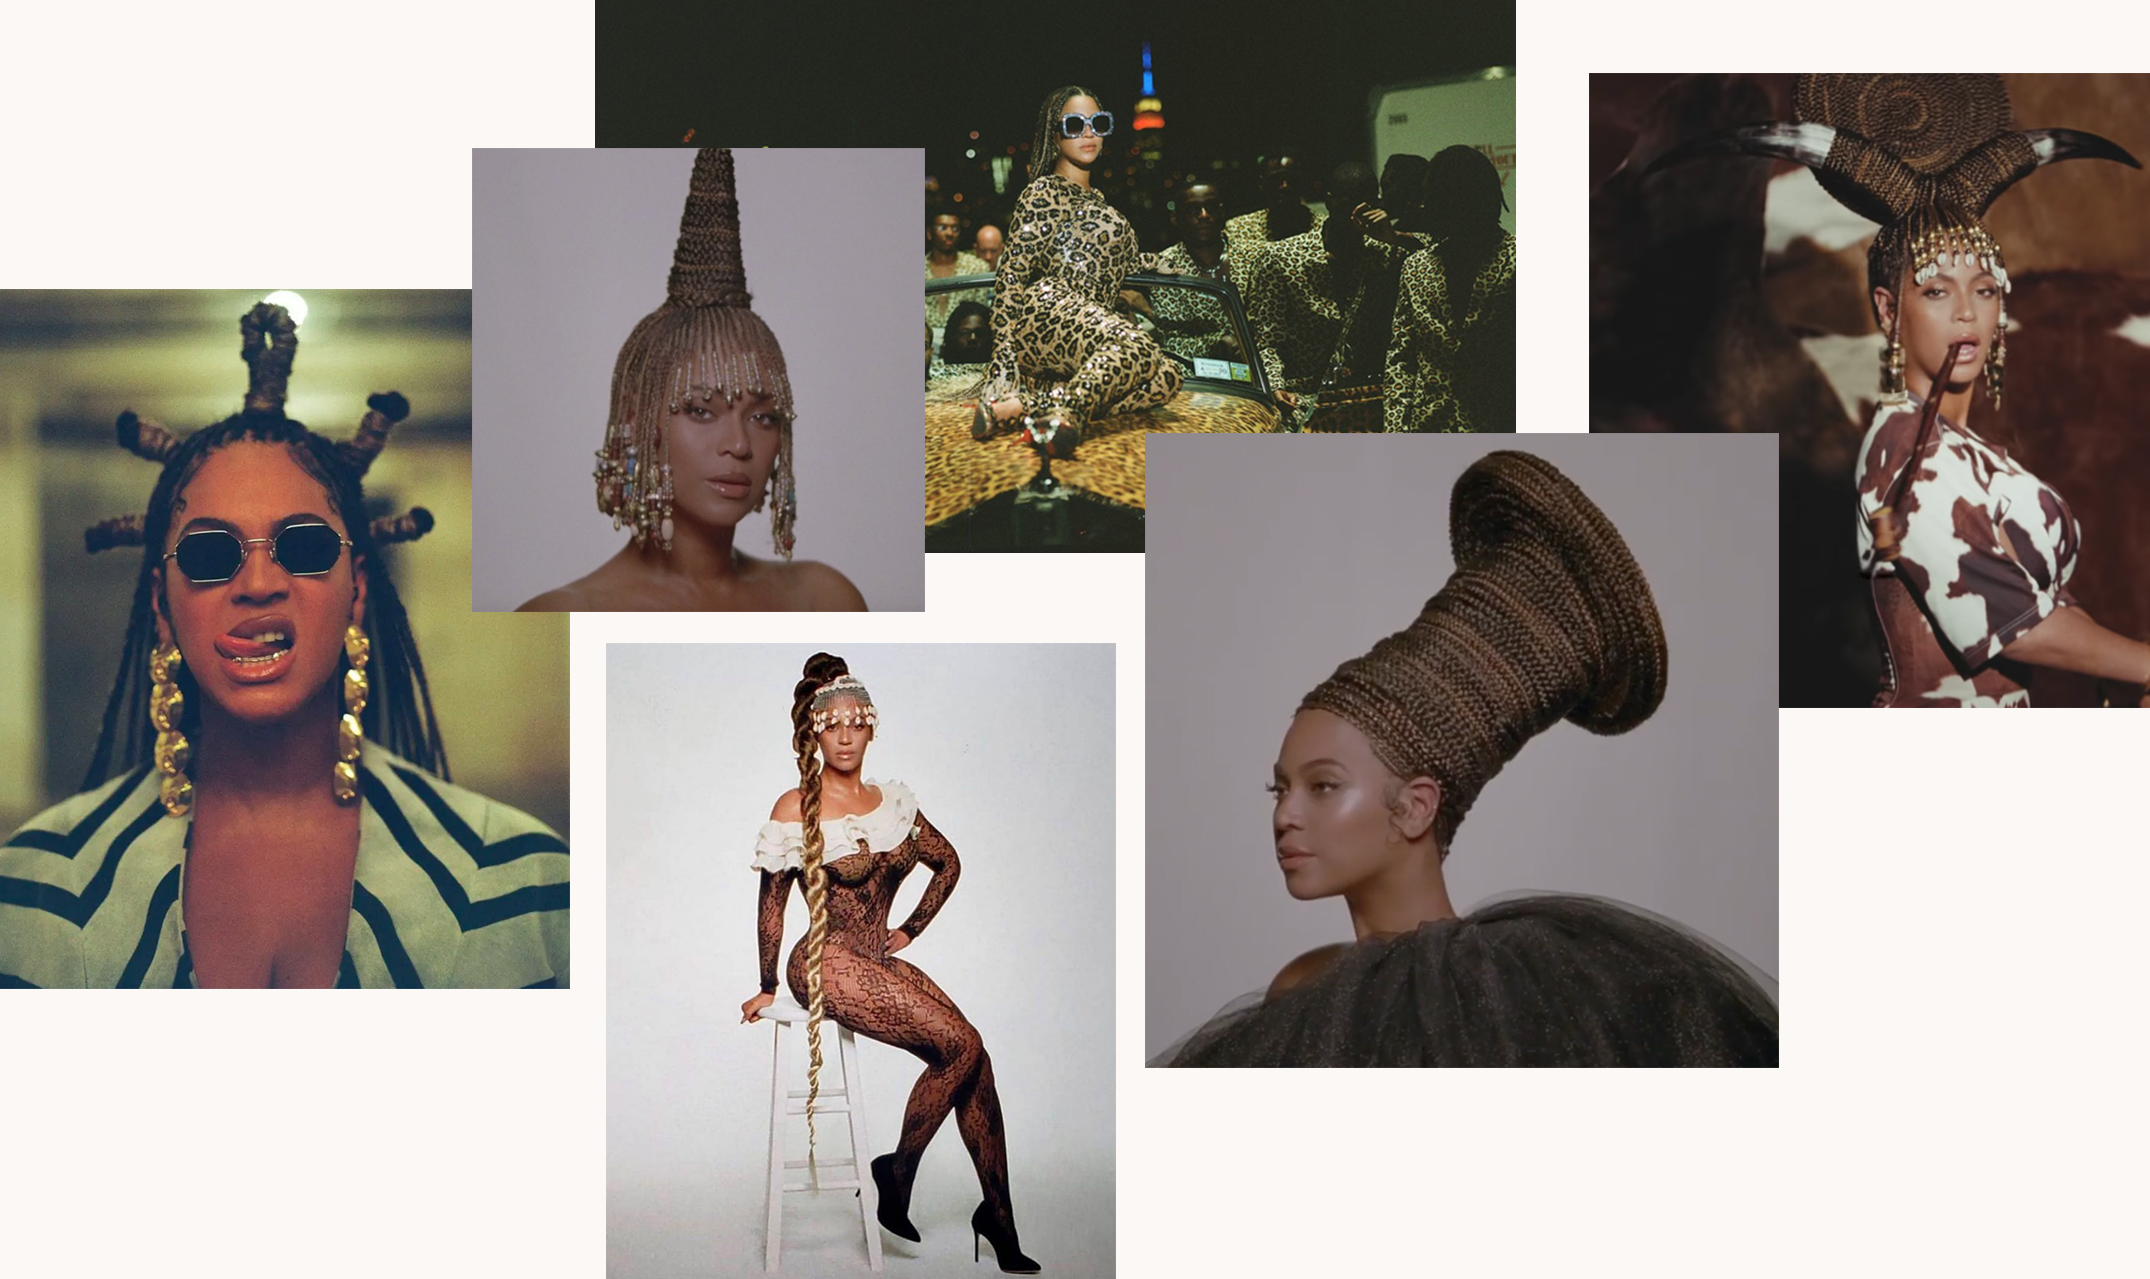 Beyoncé's 'Black Is King' Hairstylists Made 40+ Wigs In Just 6 Days